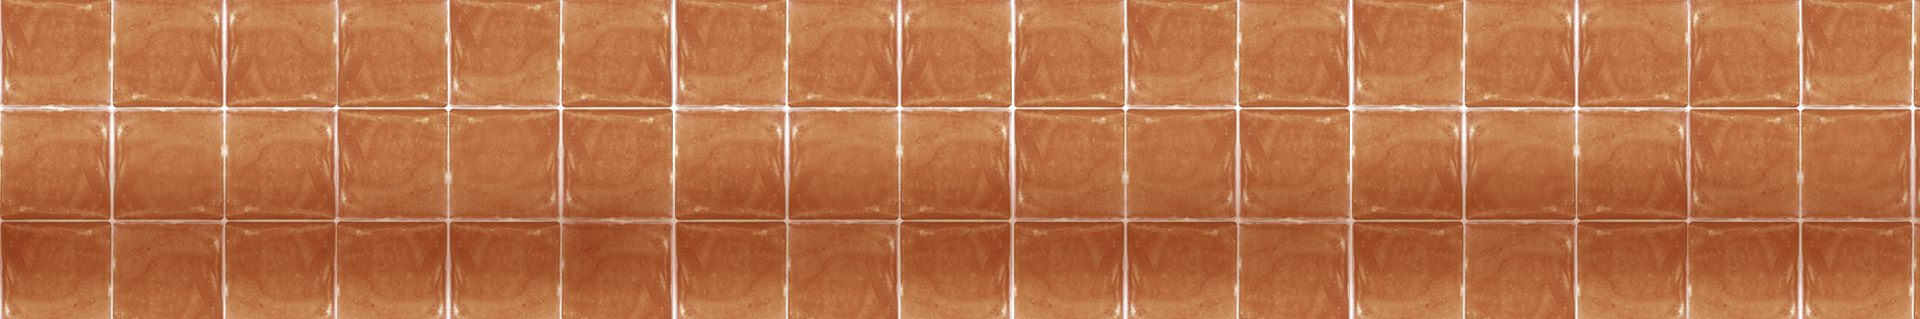 Mexican Tile in Weston Fl - Great Finishes